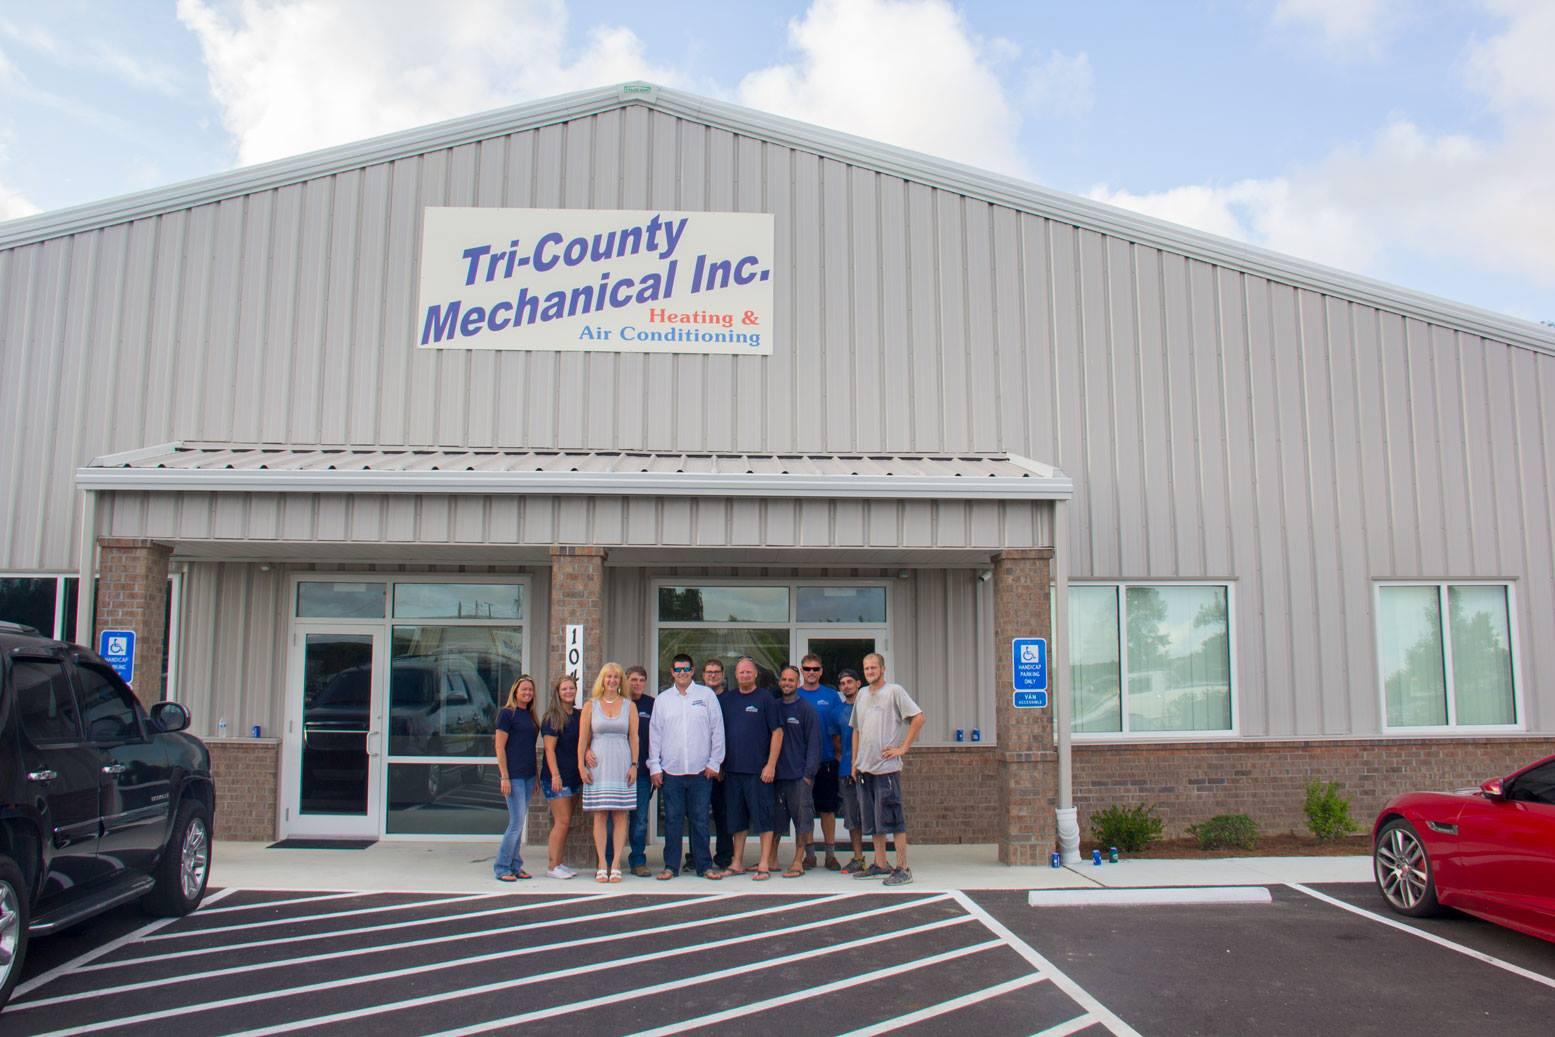 Tri-County-Mechanical